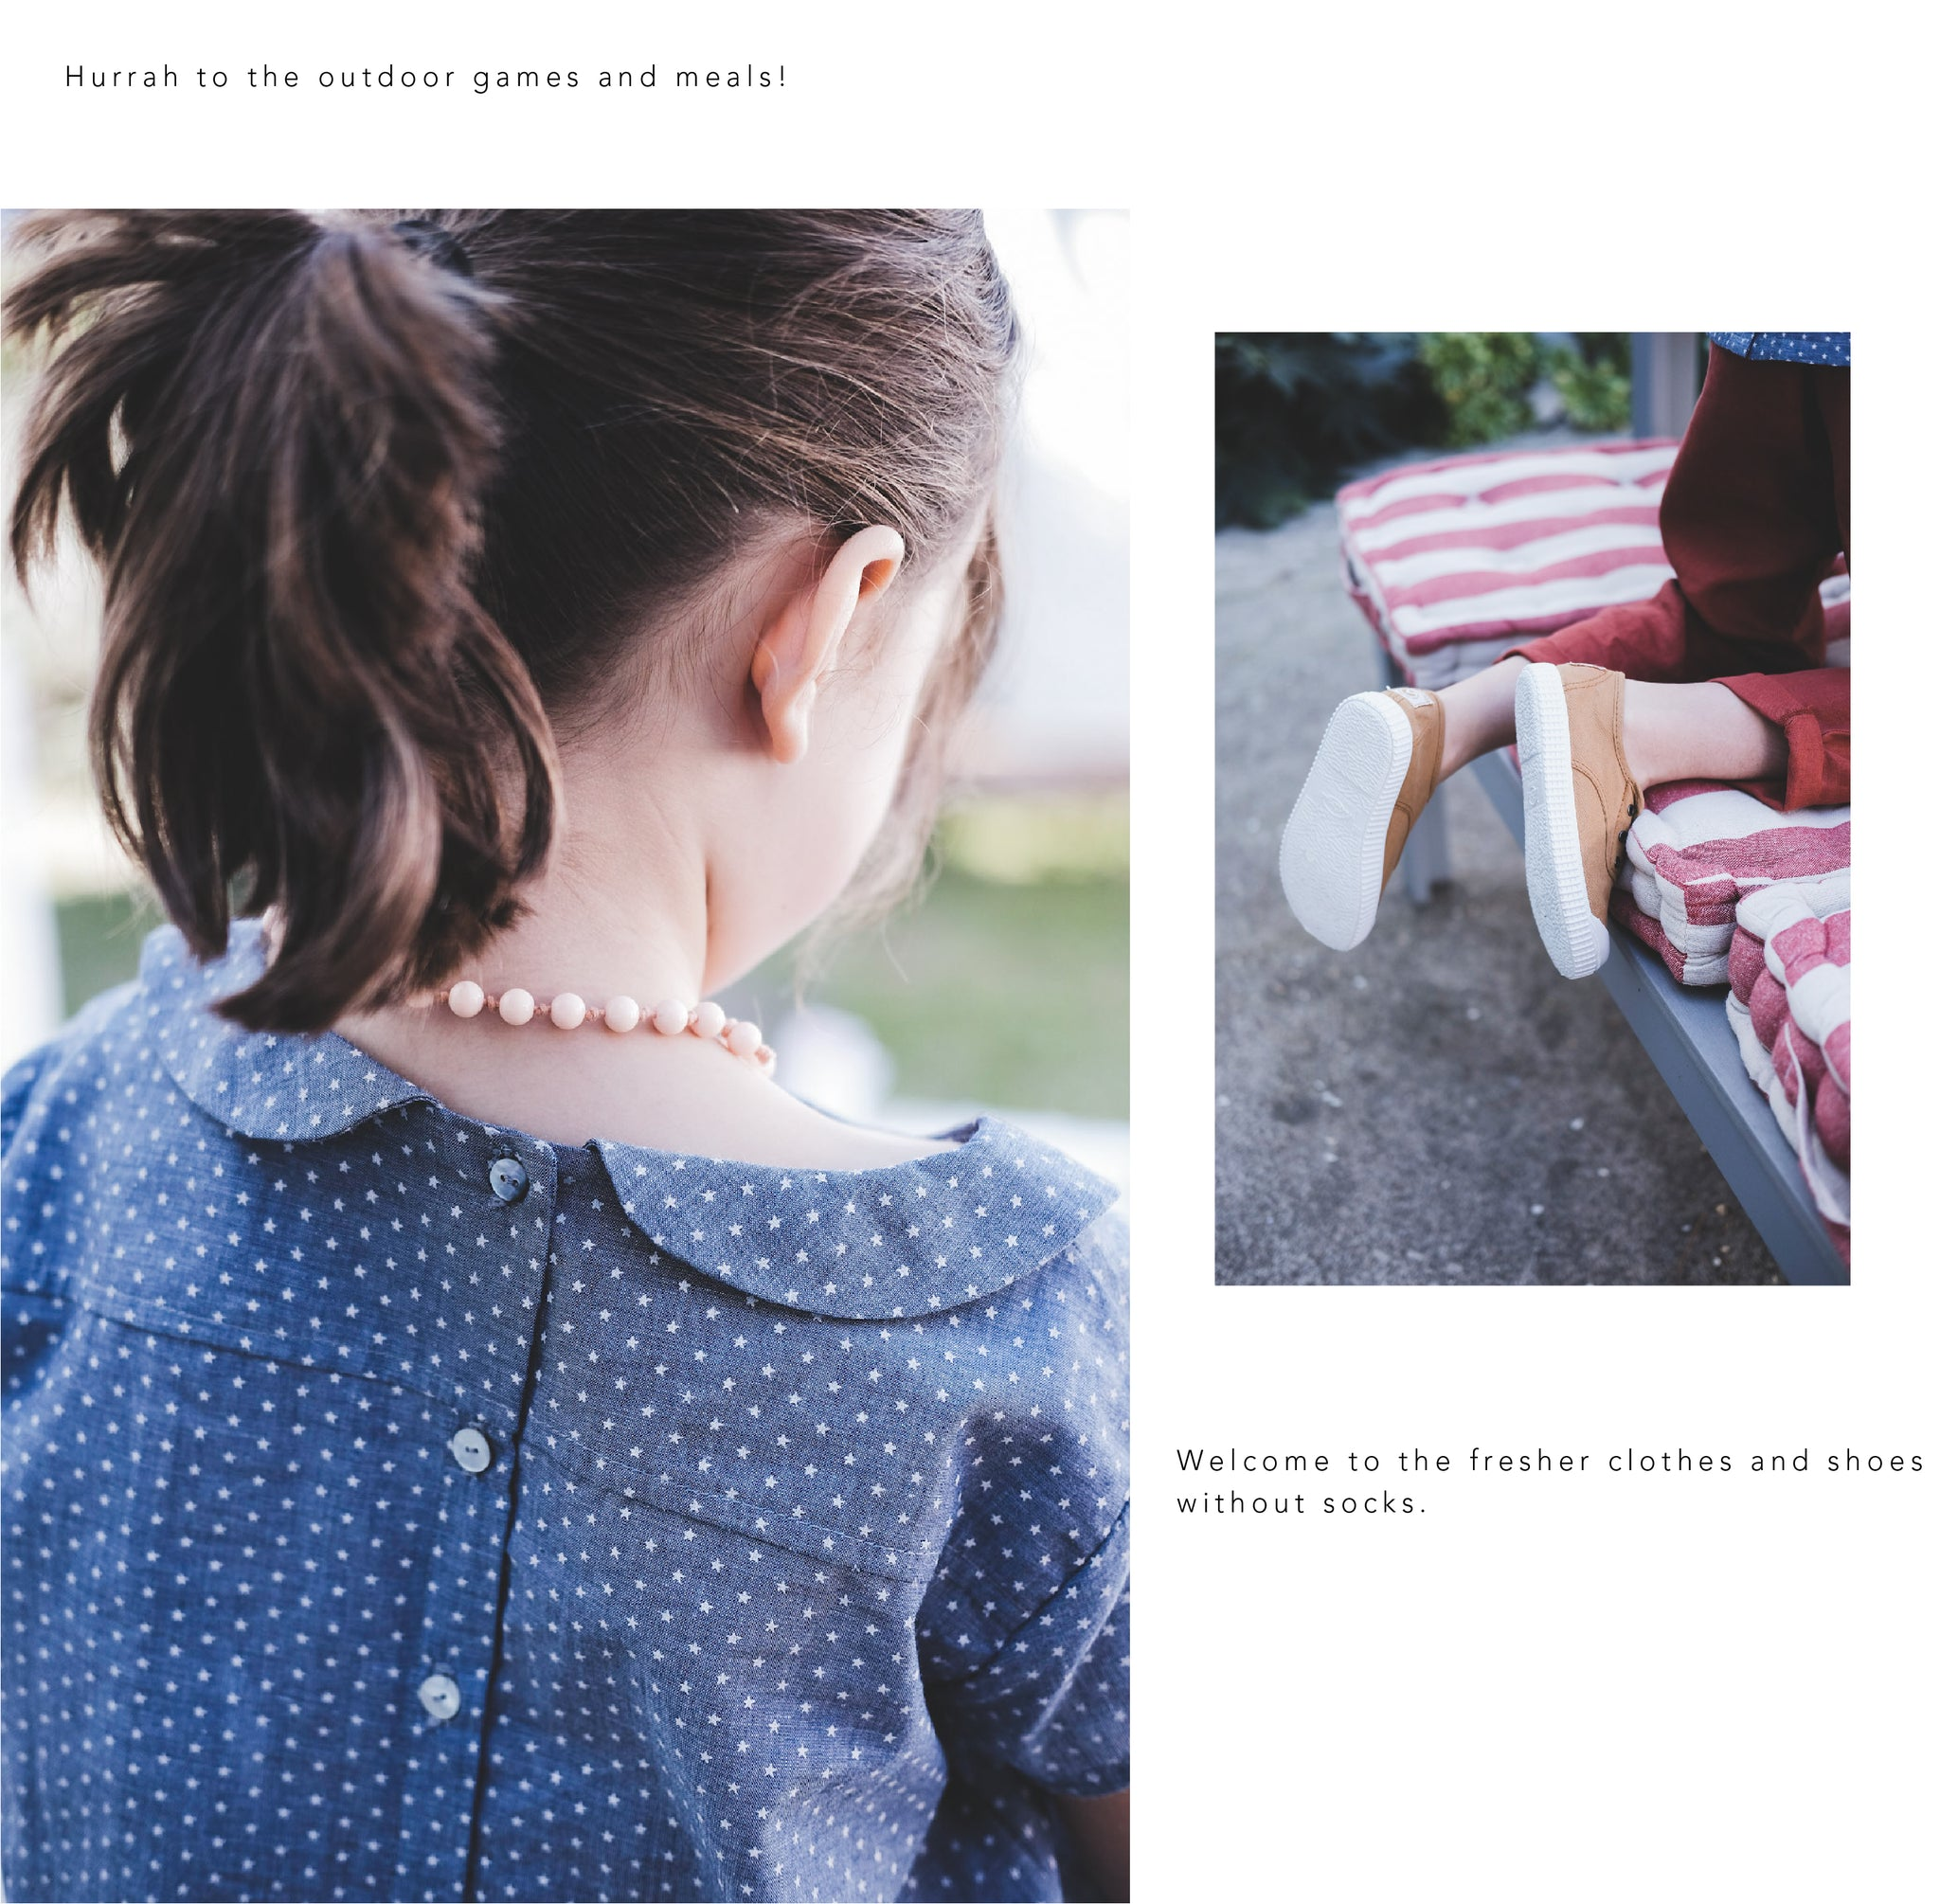 our-family-stories-elder-child-ponytail-blouse-spring-days-gracebabyandchild